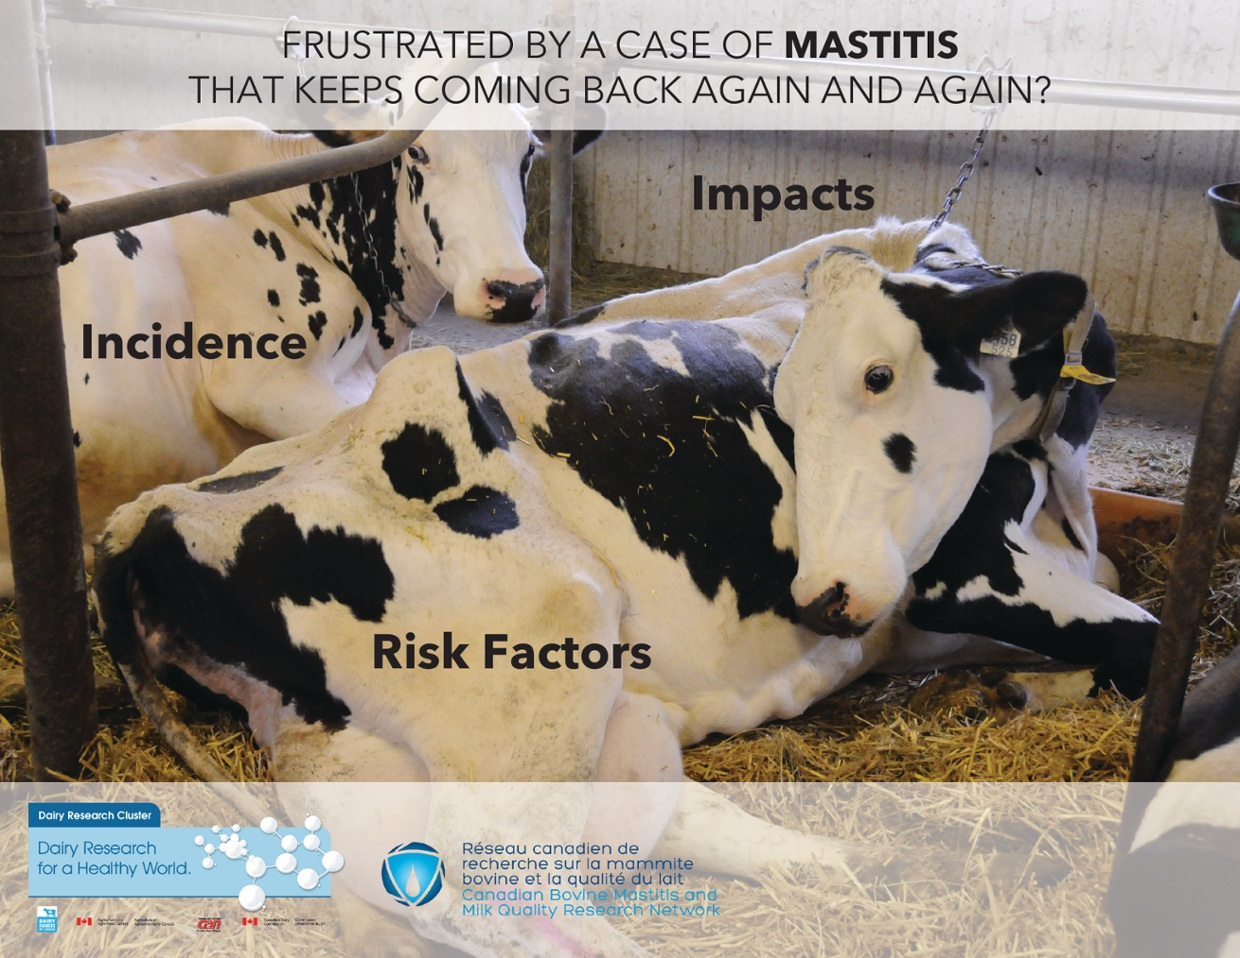 Frustrated by a case of mastitis again and again